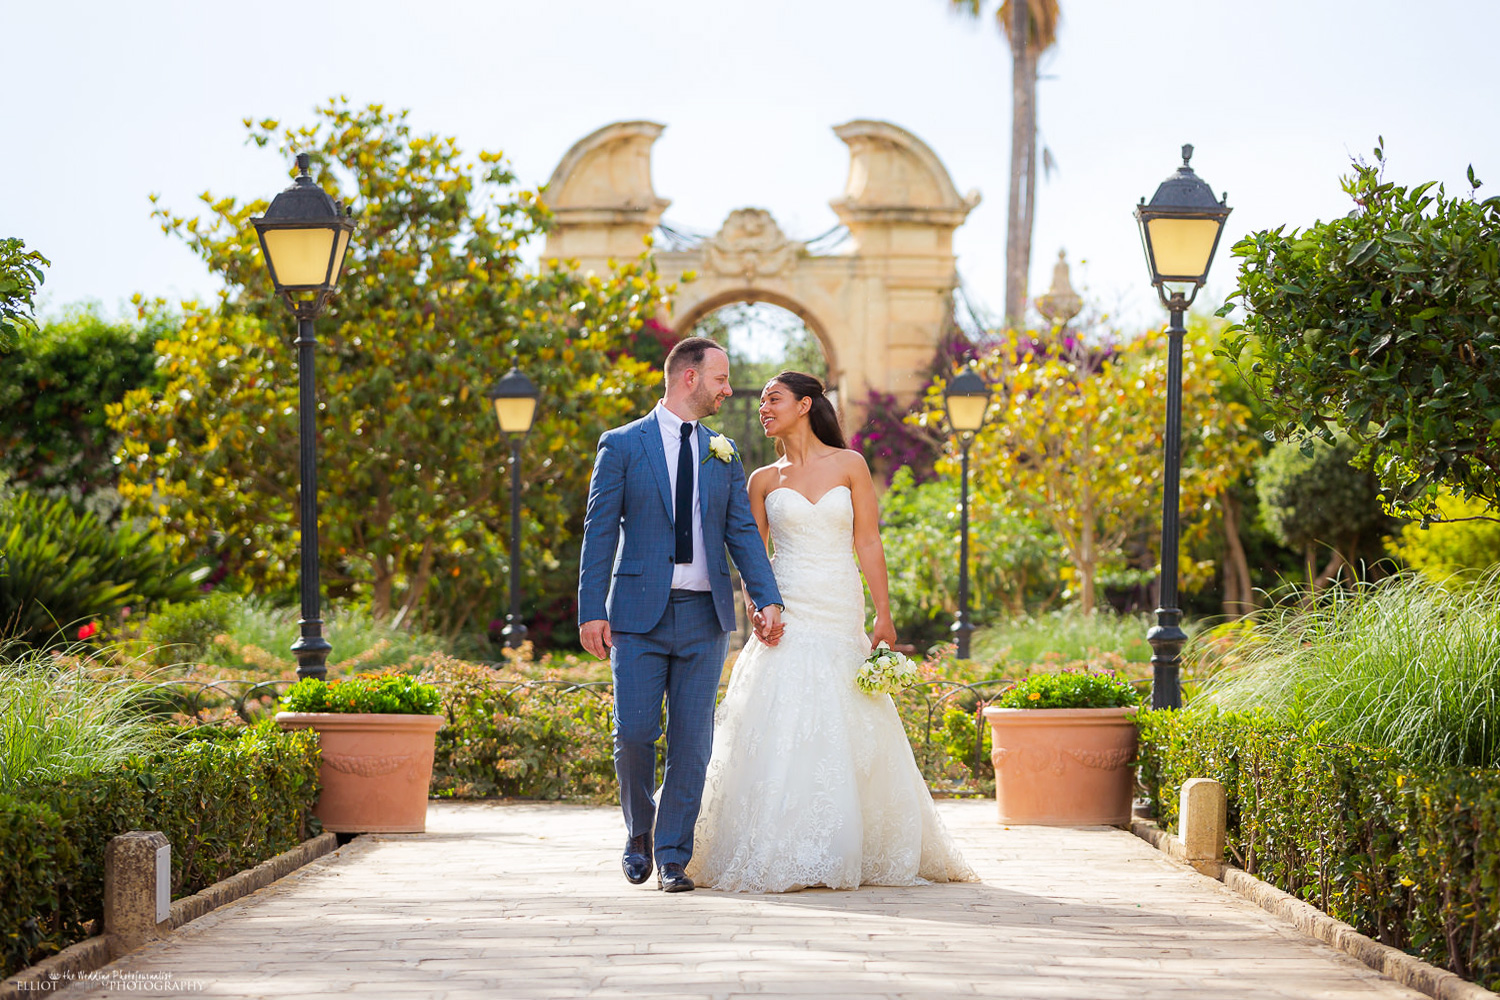 Bride and Groom walk in the Palazzo Parisio Gardens.